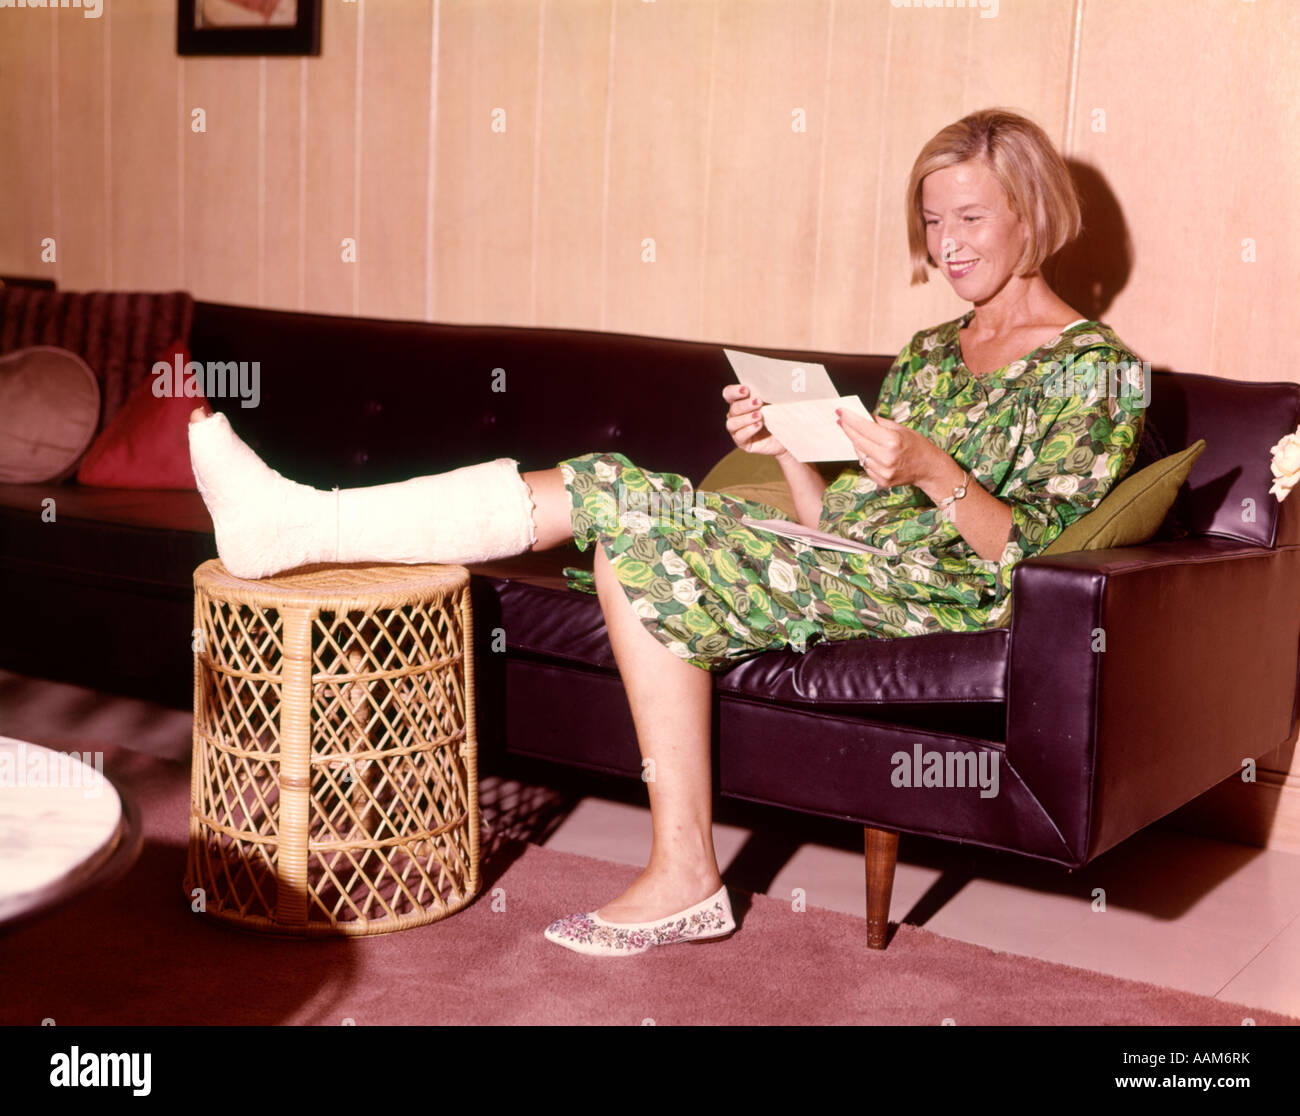 1960 1960s SMILING WOMAN LEG BROKEN IN CAST ON STOOL SITTING LEATHER SOFA OPENING INSURANCE CHECK - Stock Image